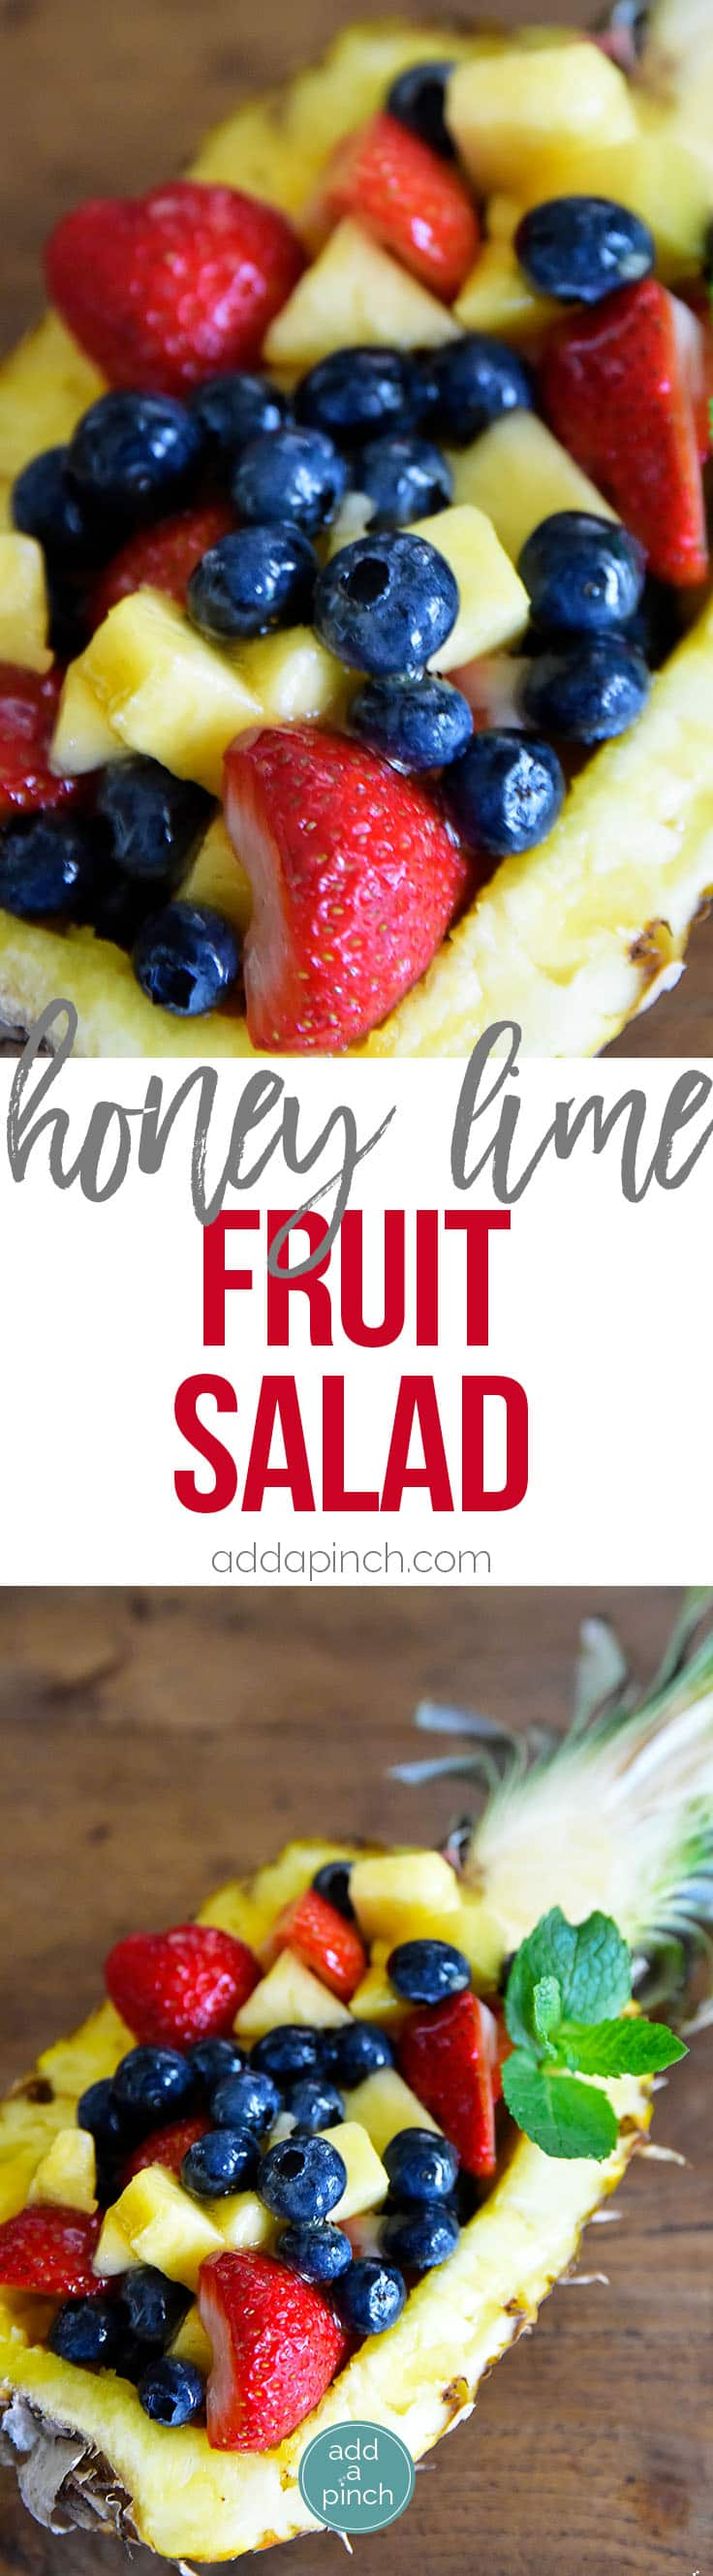 Honey Lime Fruit Salad Recipe - Made with your favorite fruits with a delicious dressing, this honey lime fruit salad is always a favorite! // addapinch.com